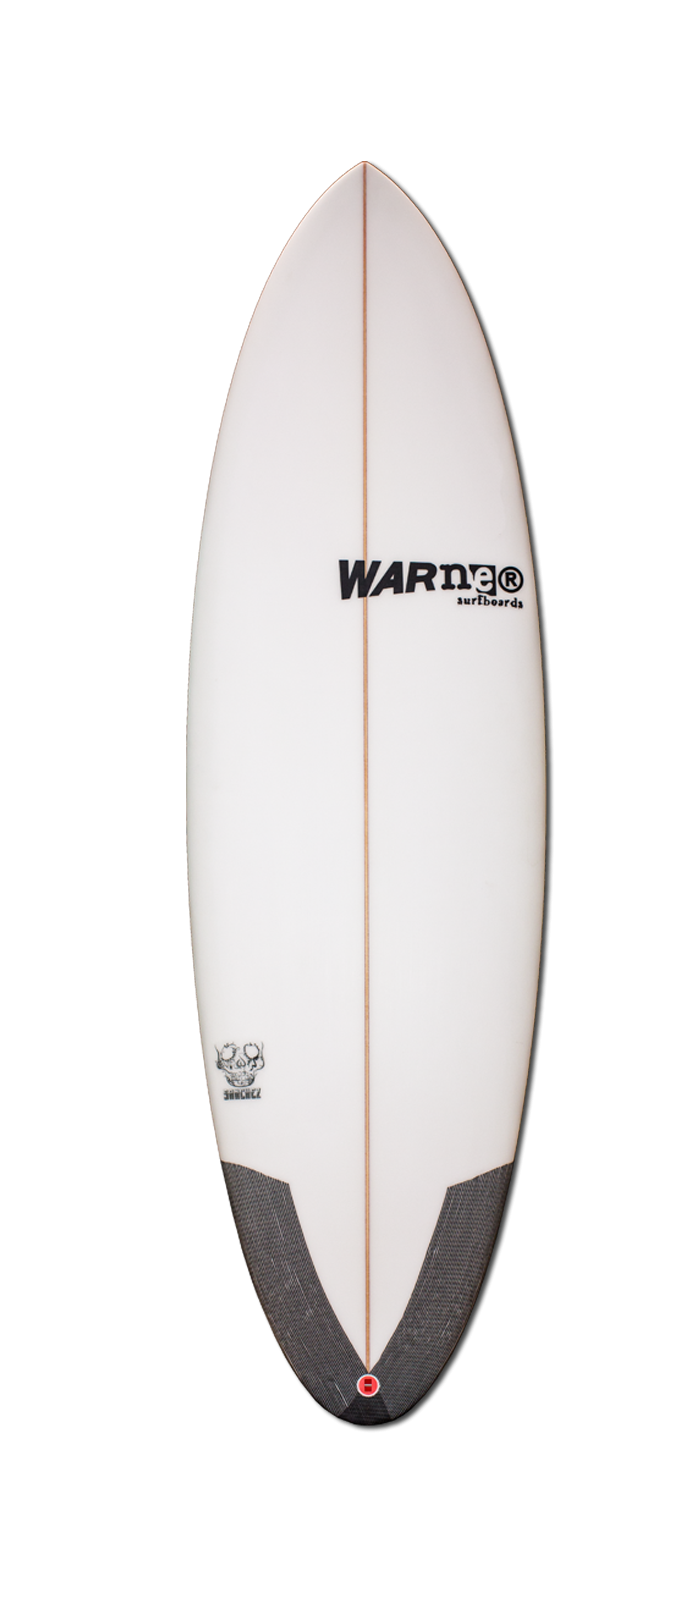 SANCHEZ surfboard model